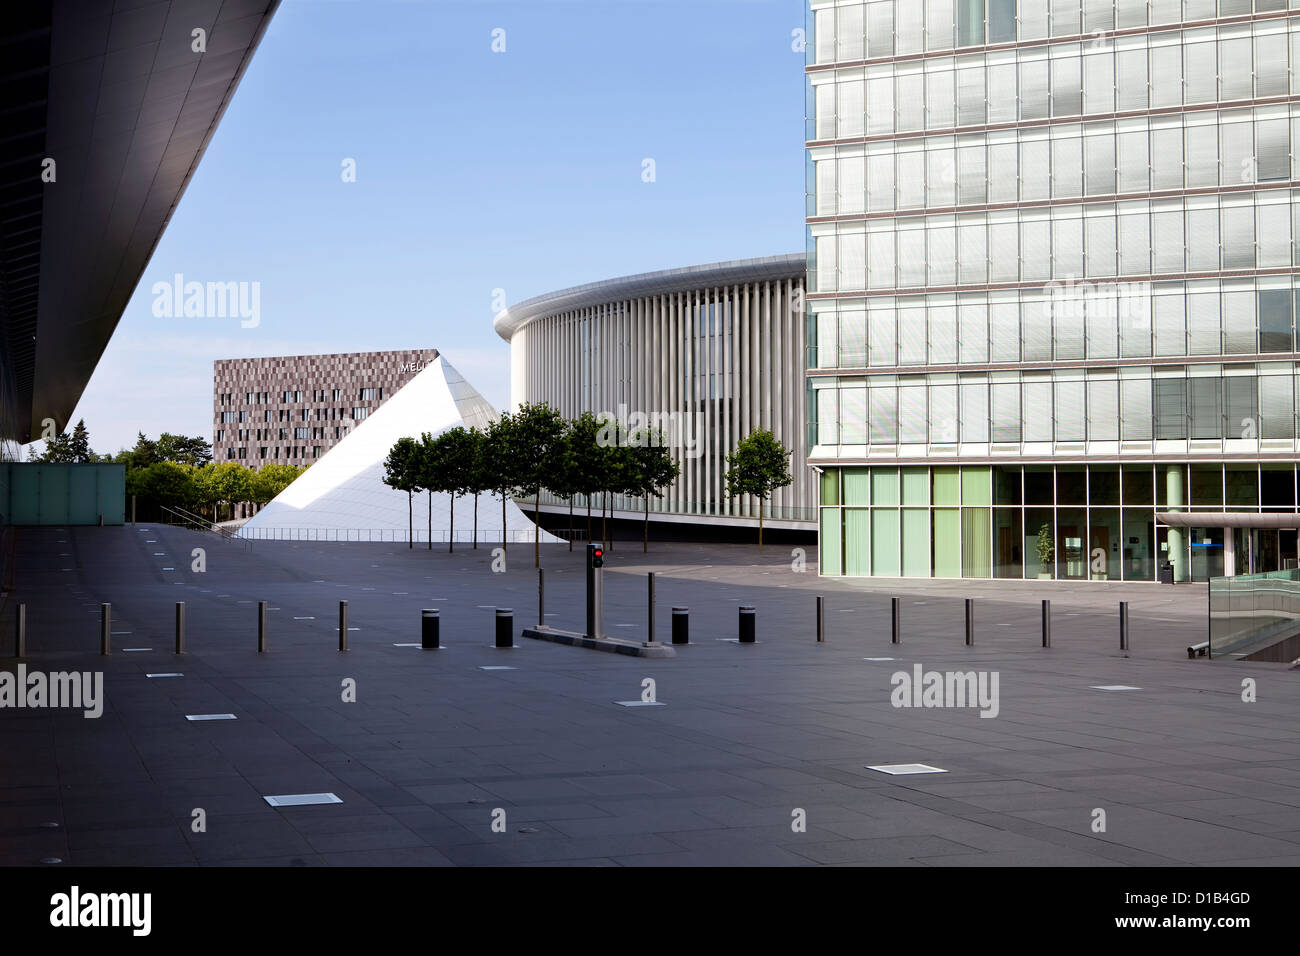 New Philharmonic Hall, concert hall of the Philharmonique du Luxembourg, Place de l'Europe, Kirchberg, Luxembourg, - Stock Image